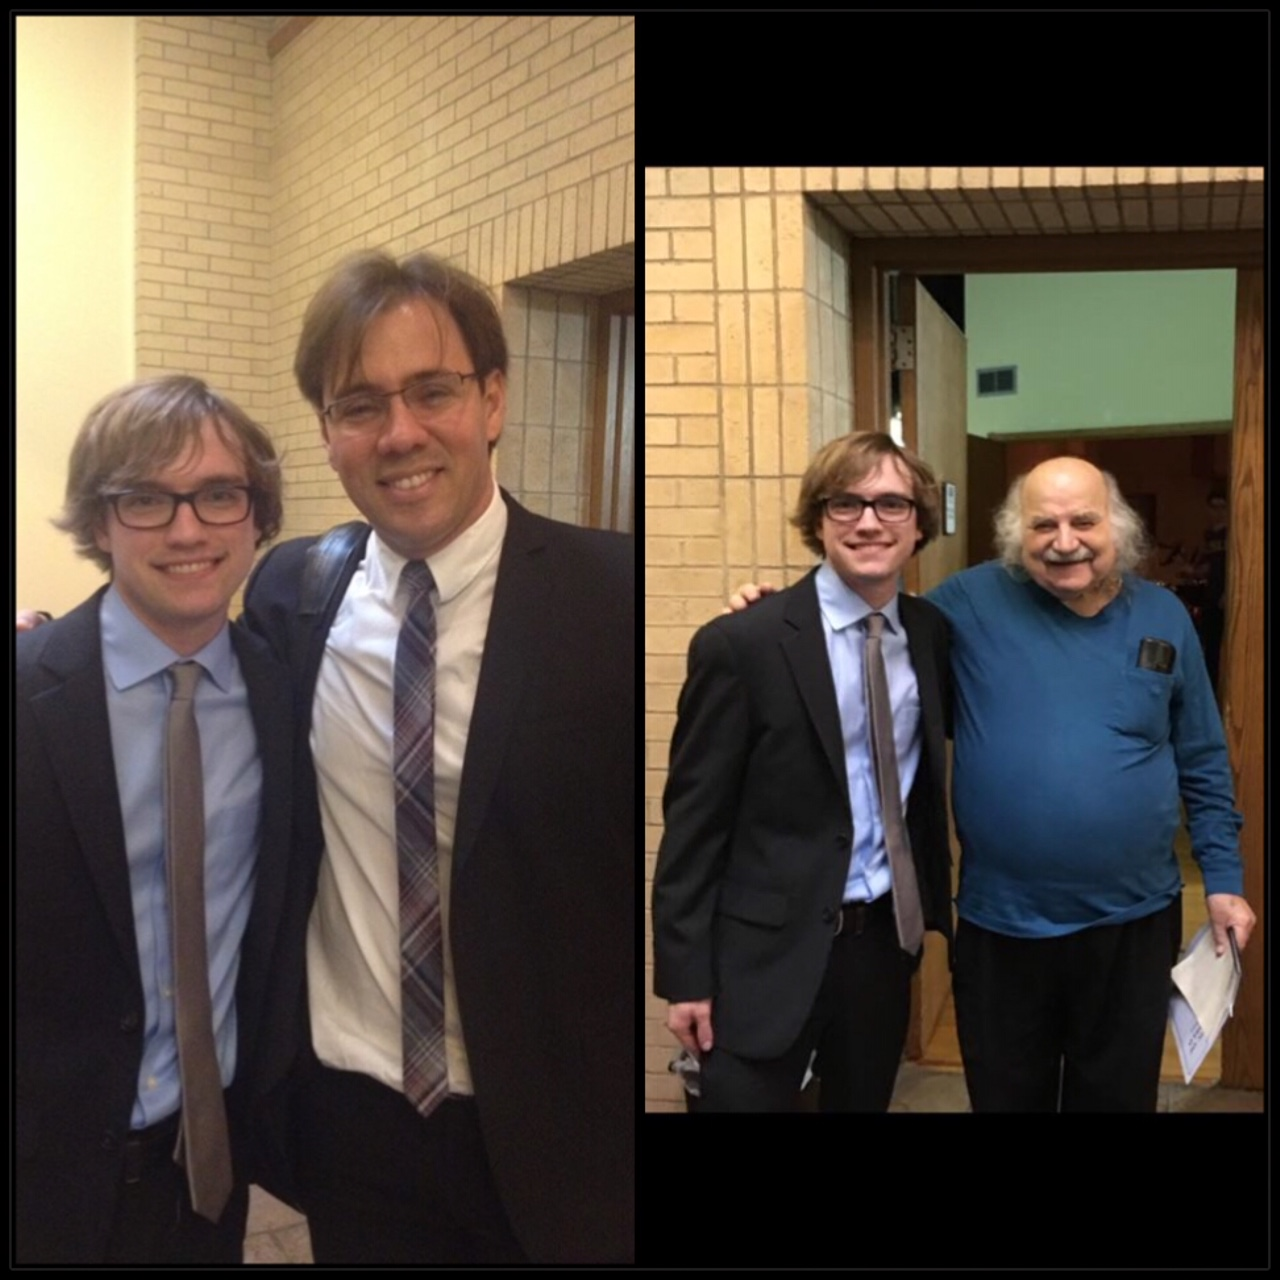 Left: Me pictured with Leandro Gazineo (conductor of my debut piece for orchestra)  Right: Me pictured with Dinos Constantinides (my undergraduate composition teacher)